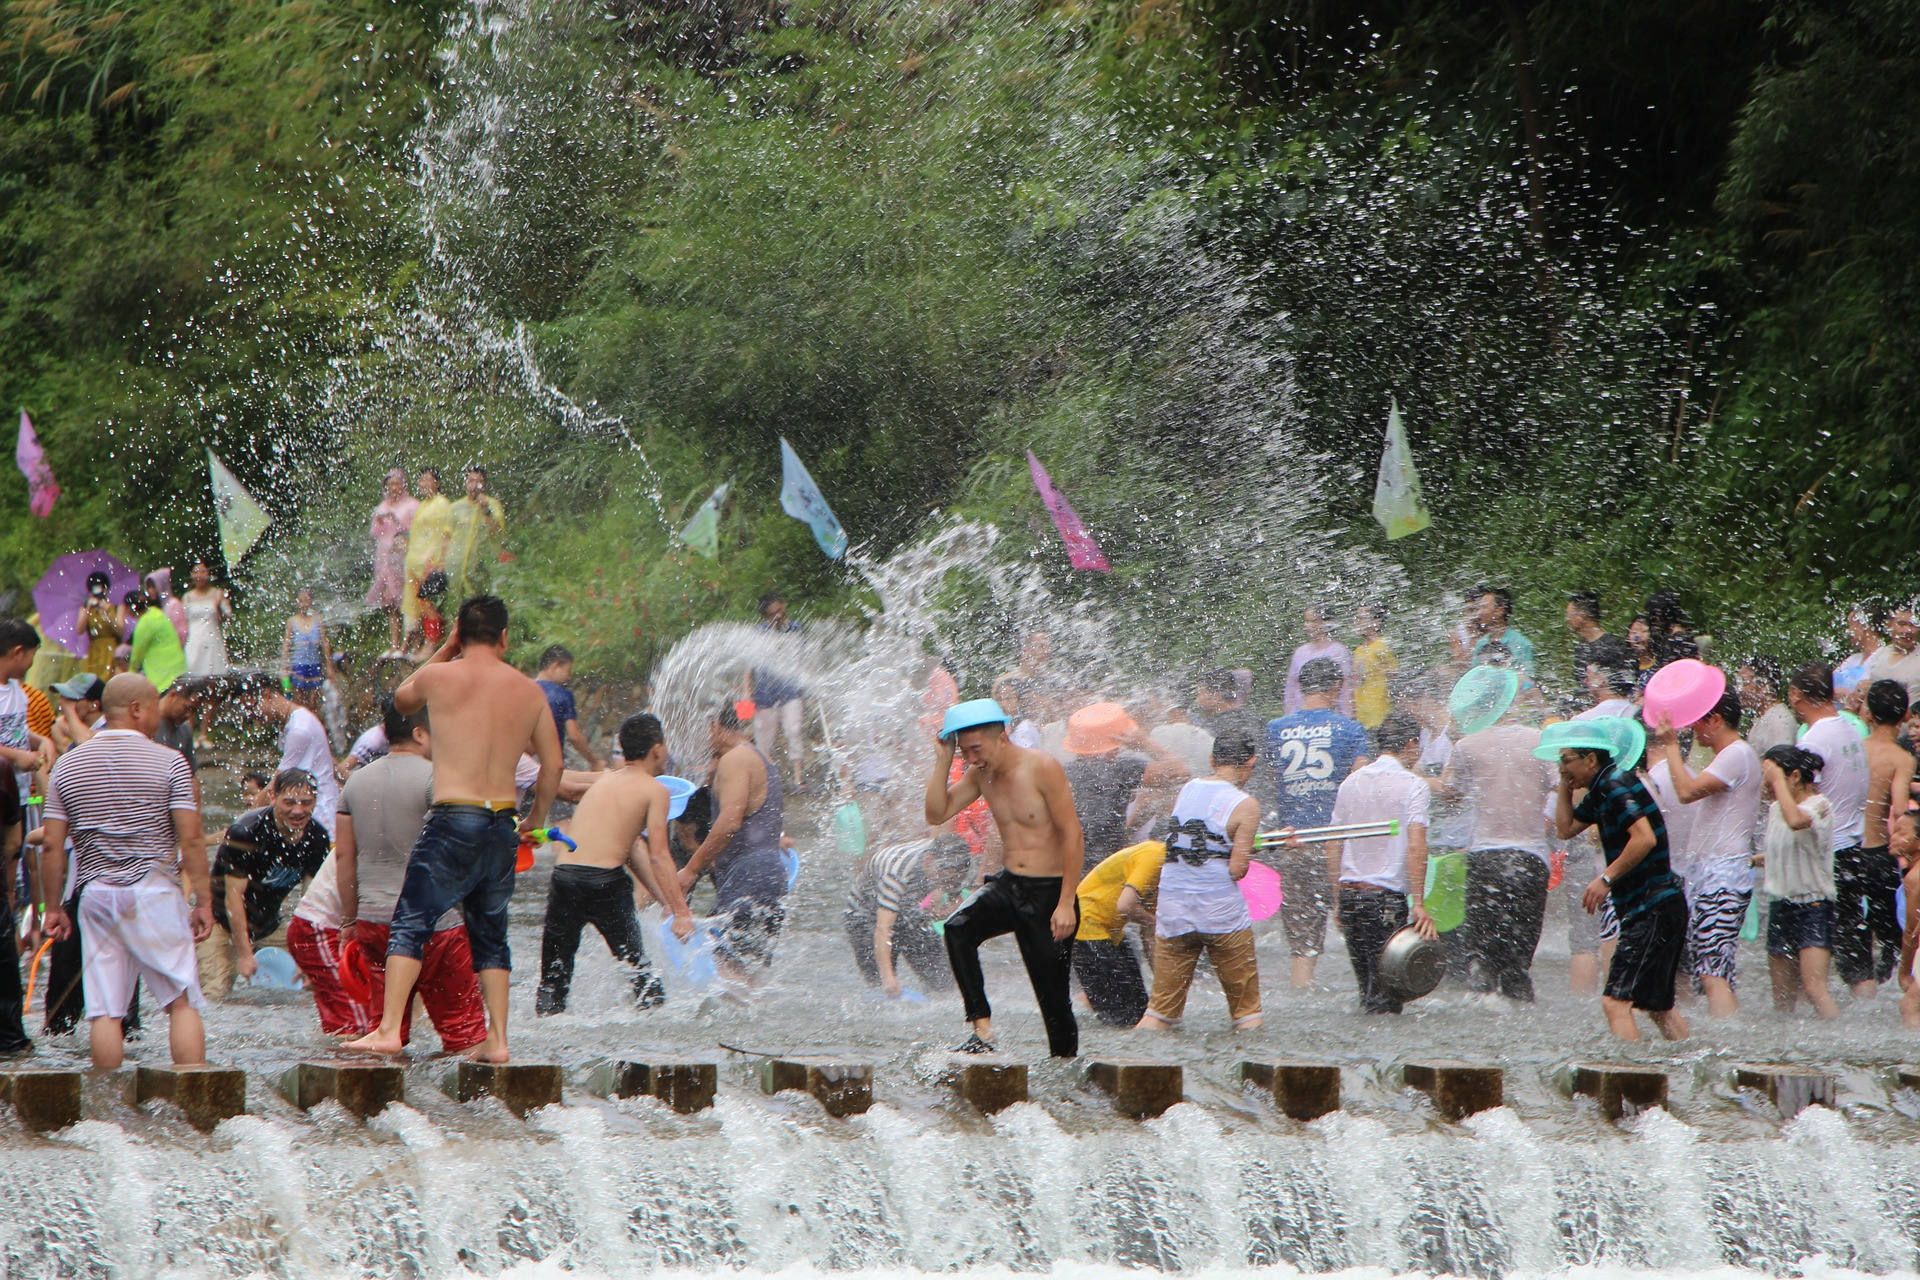 water-fight-989540_1920